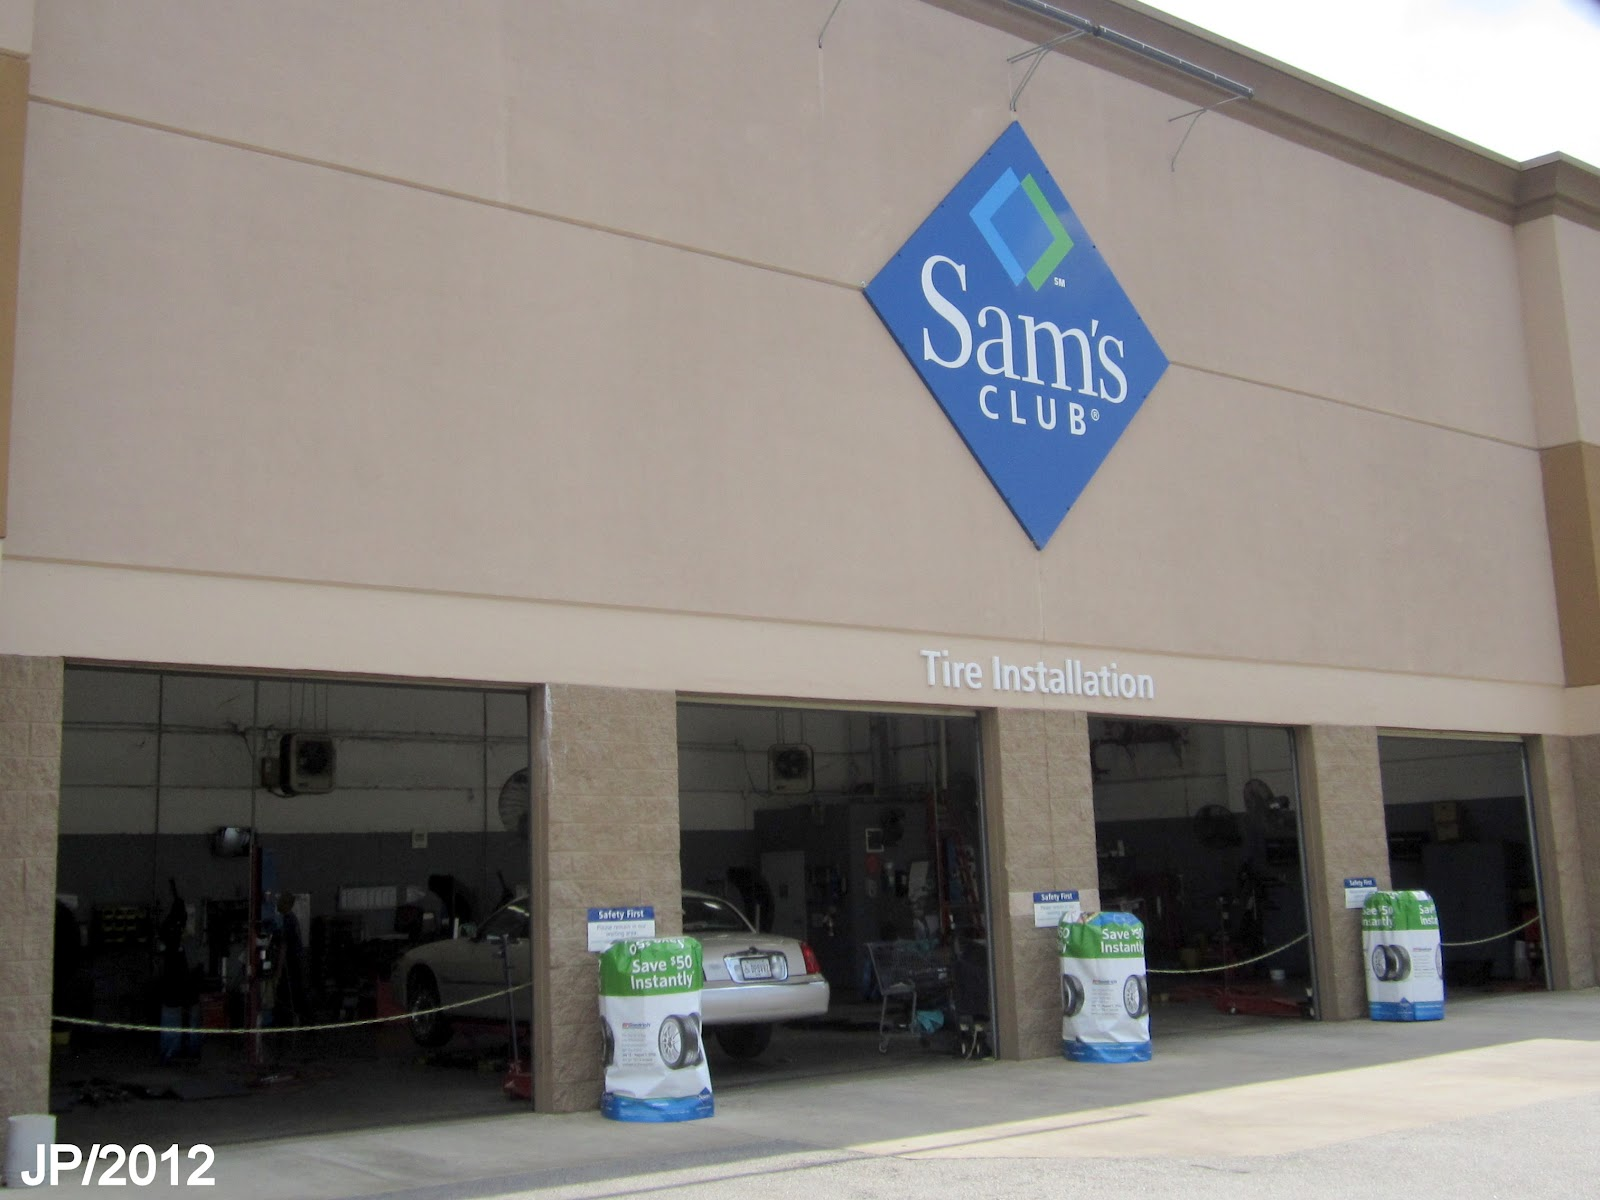 Sams Auto Sales >> MACON Bibb Georgia Attorney College Restaurant Dr.Hospital Bank Church Fire Police Dept. Store ...